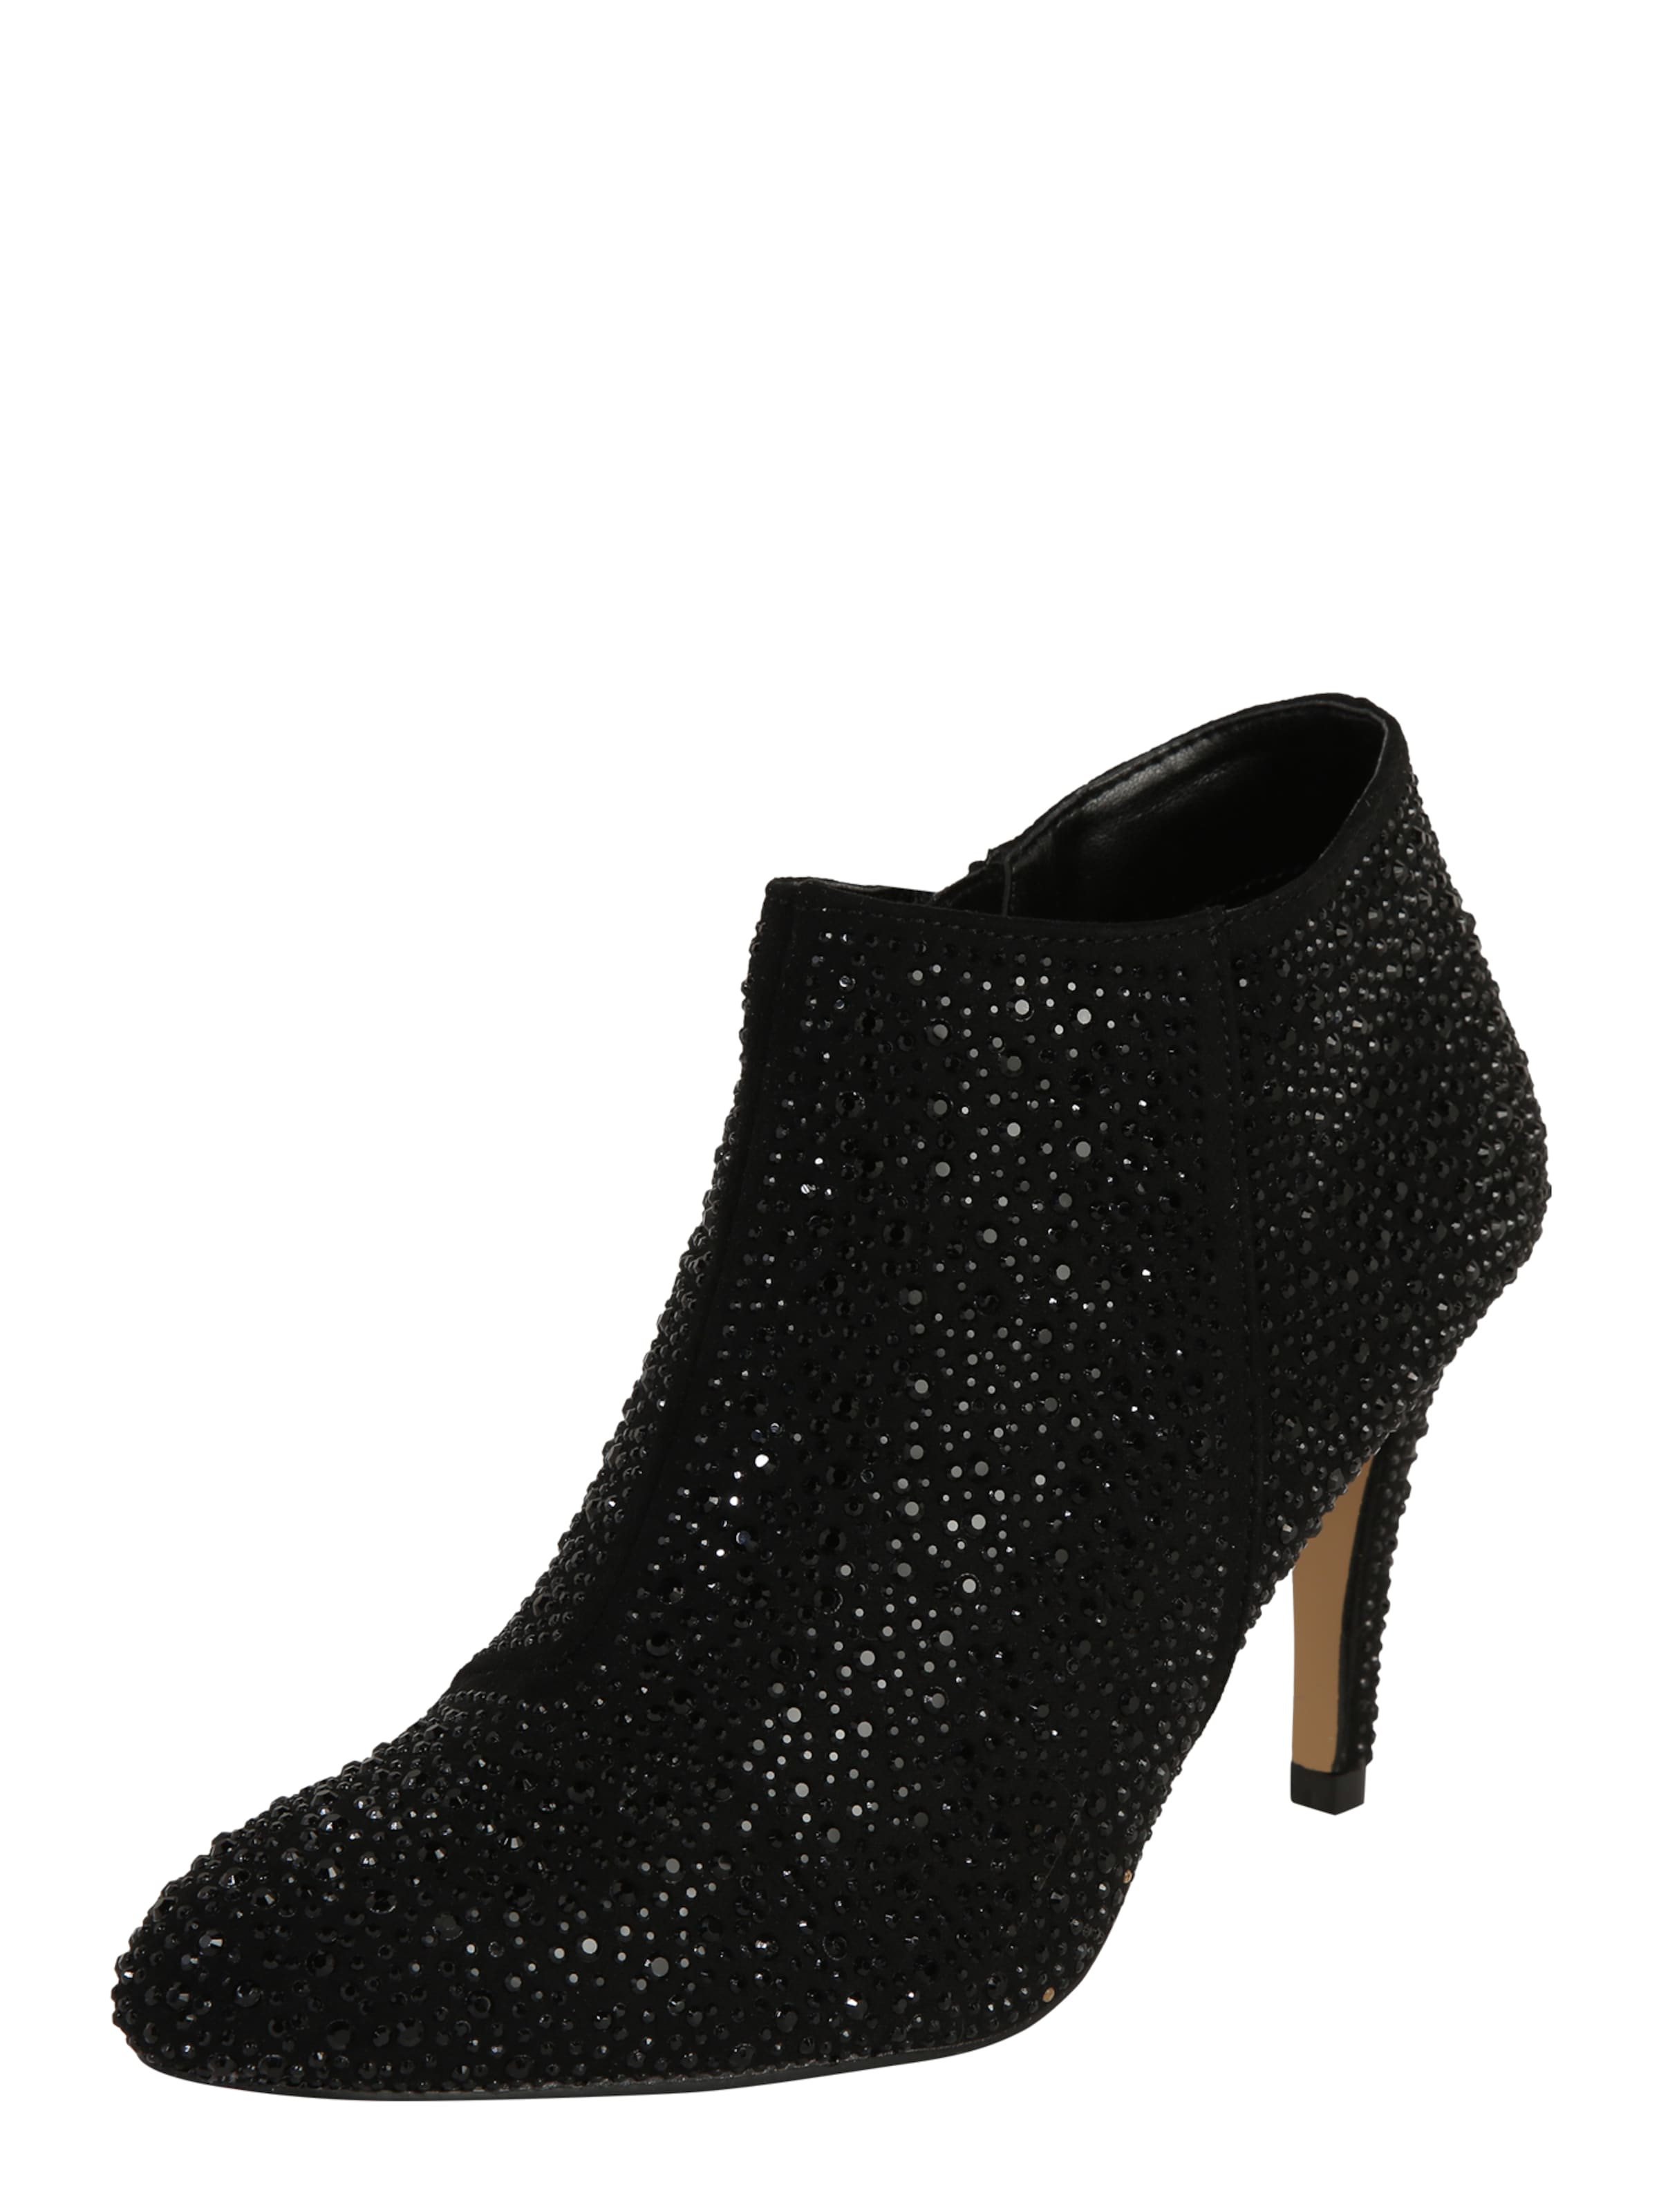 Bottines Noir 'serene En Carvela By Geiger Jewel' Kurt yn80NOPvmw